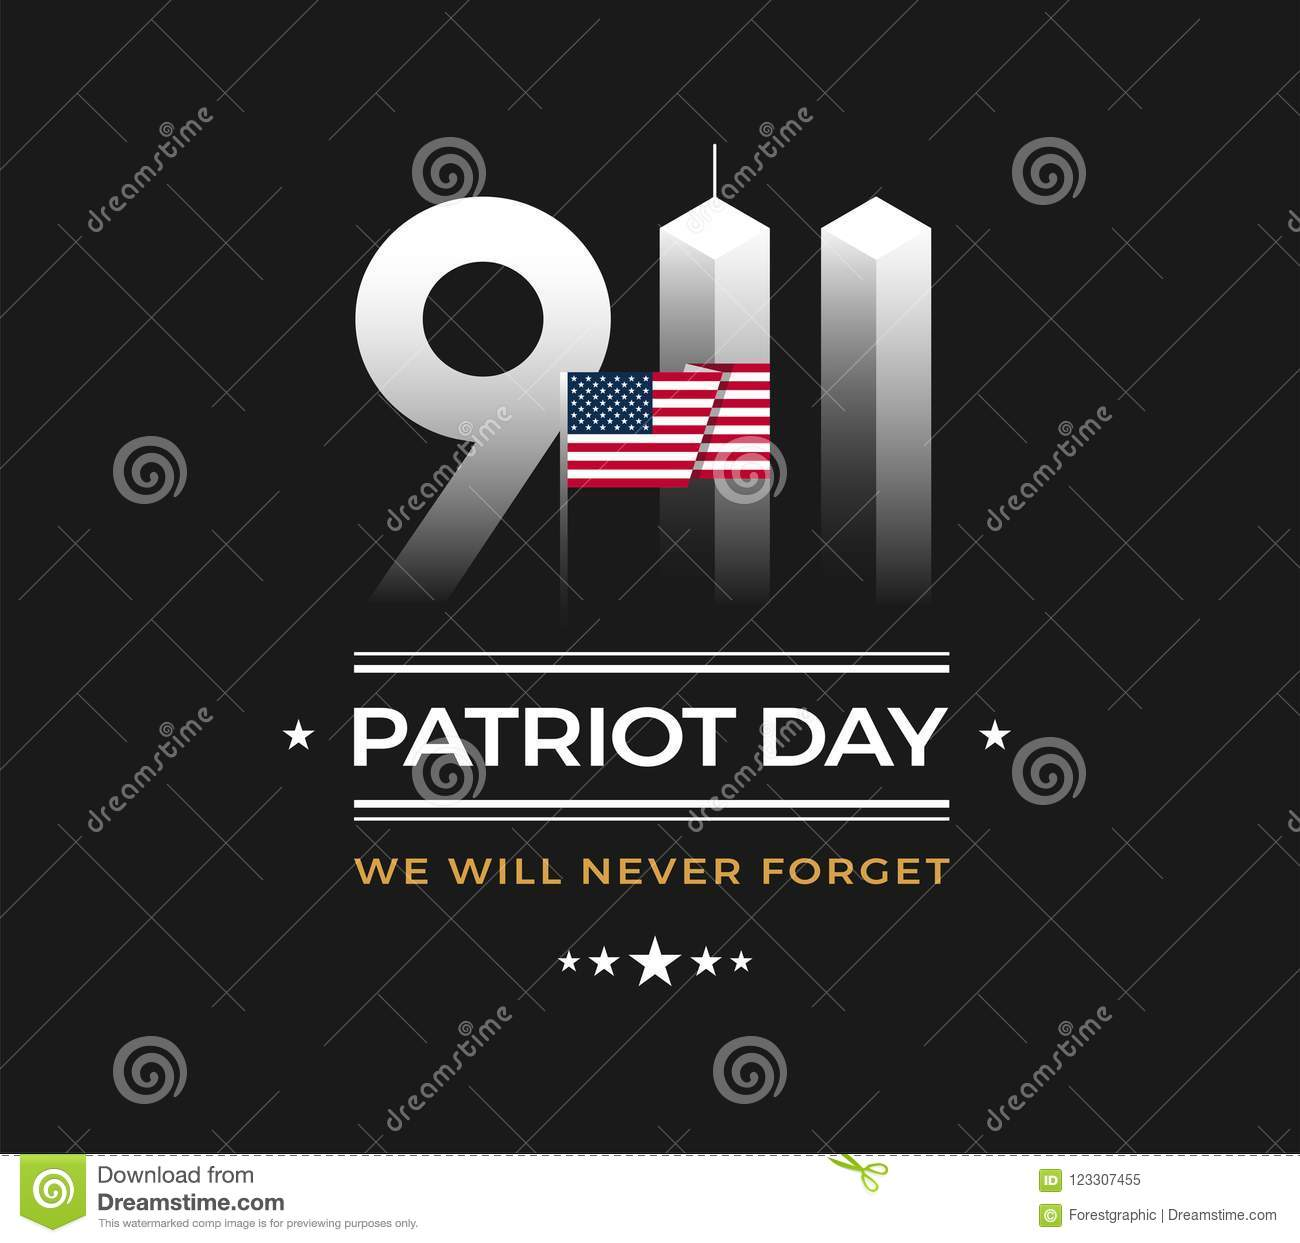 Patriot Day 9 11 Memorial Illustration With Usa Flag 911